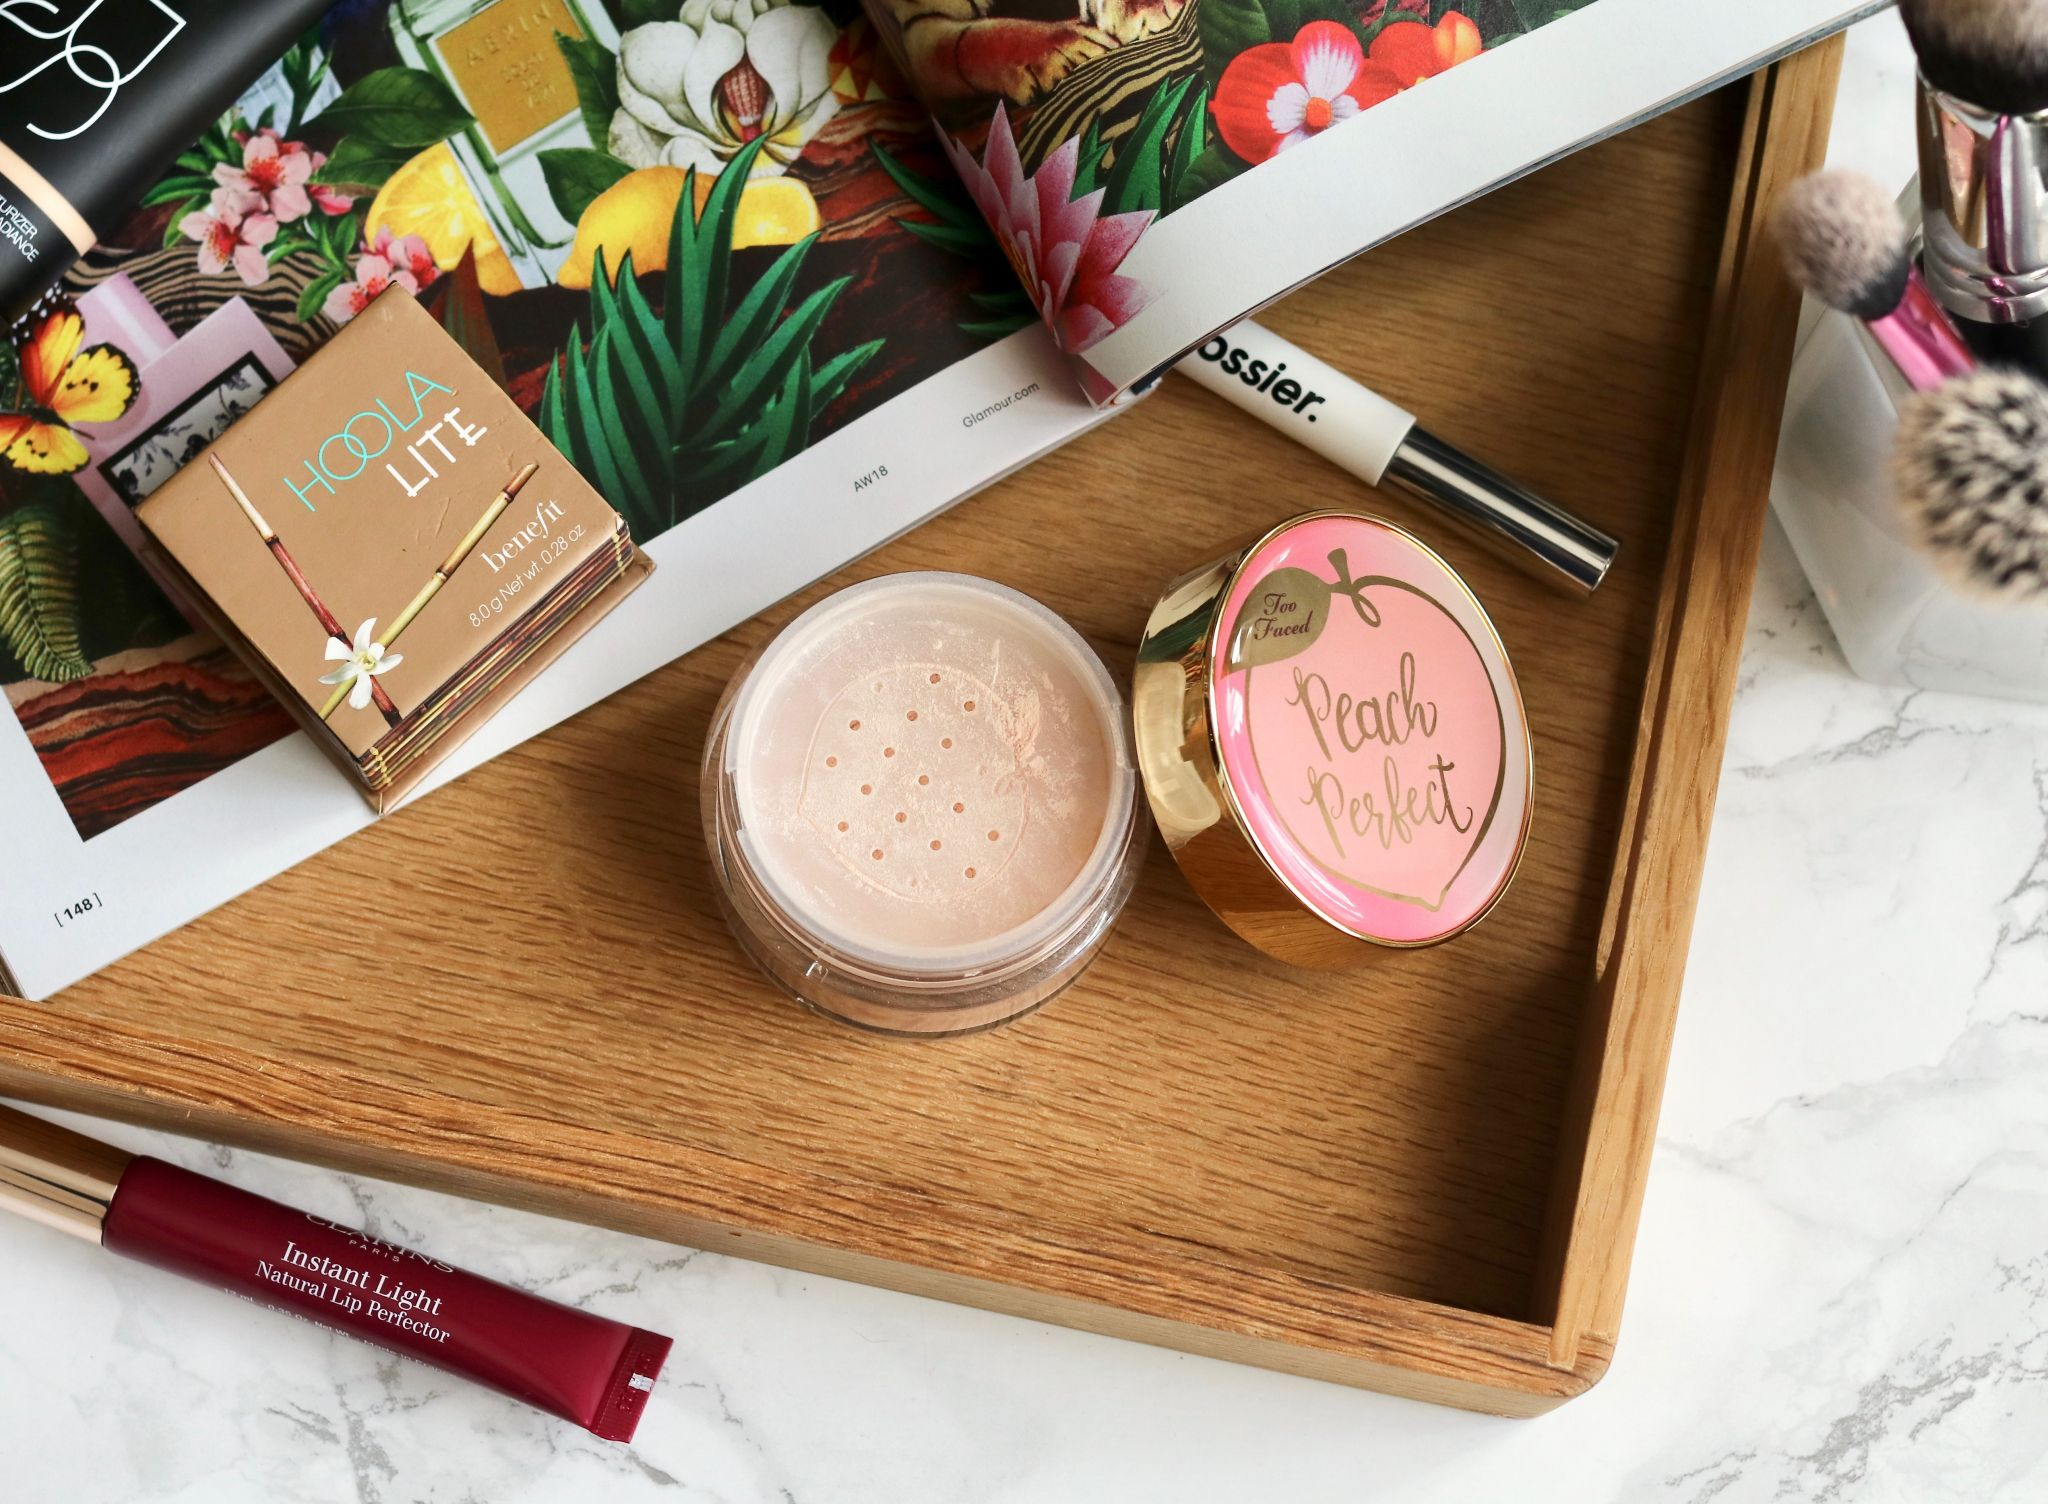 too faced peach perfect setting powder - the best powder of them all for oily skin?